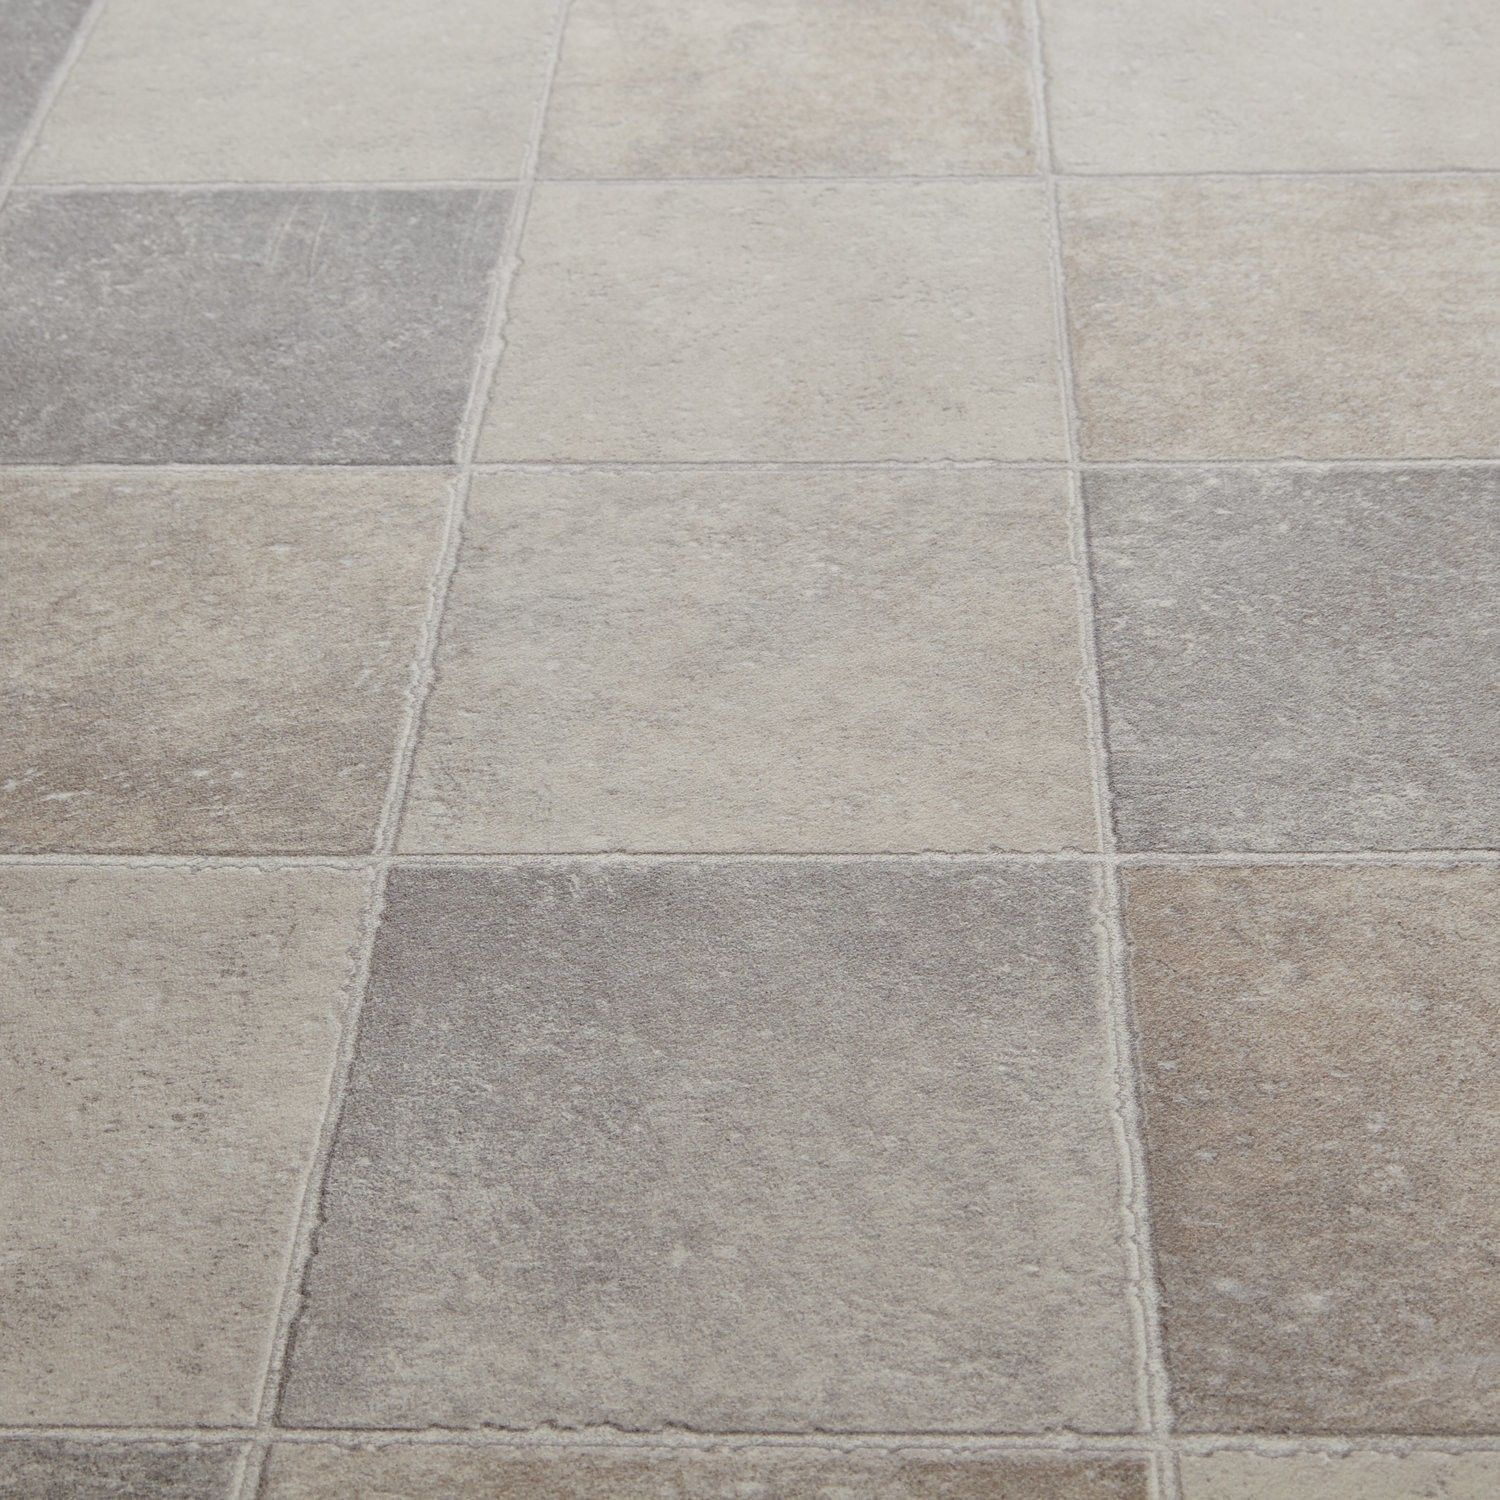 interiors natural cubist architonic en stone from tiles product tile floor by flooring claybrook mosaics h ltd